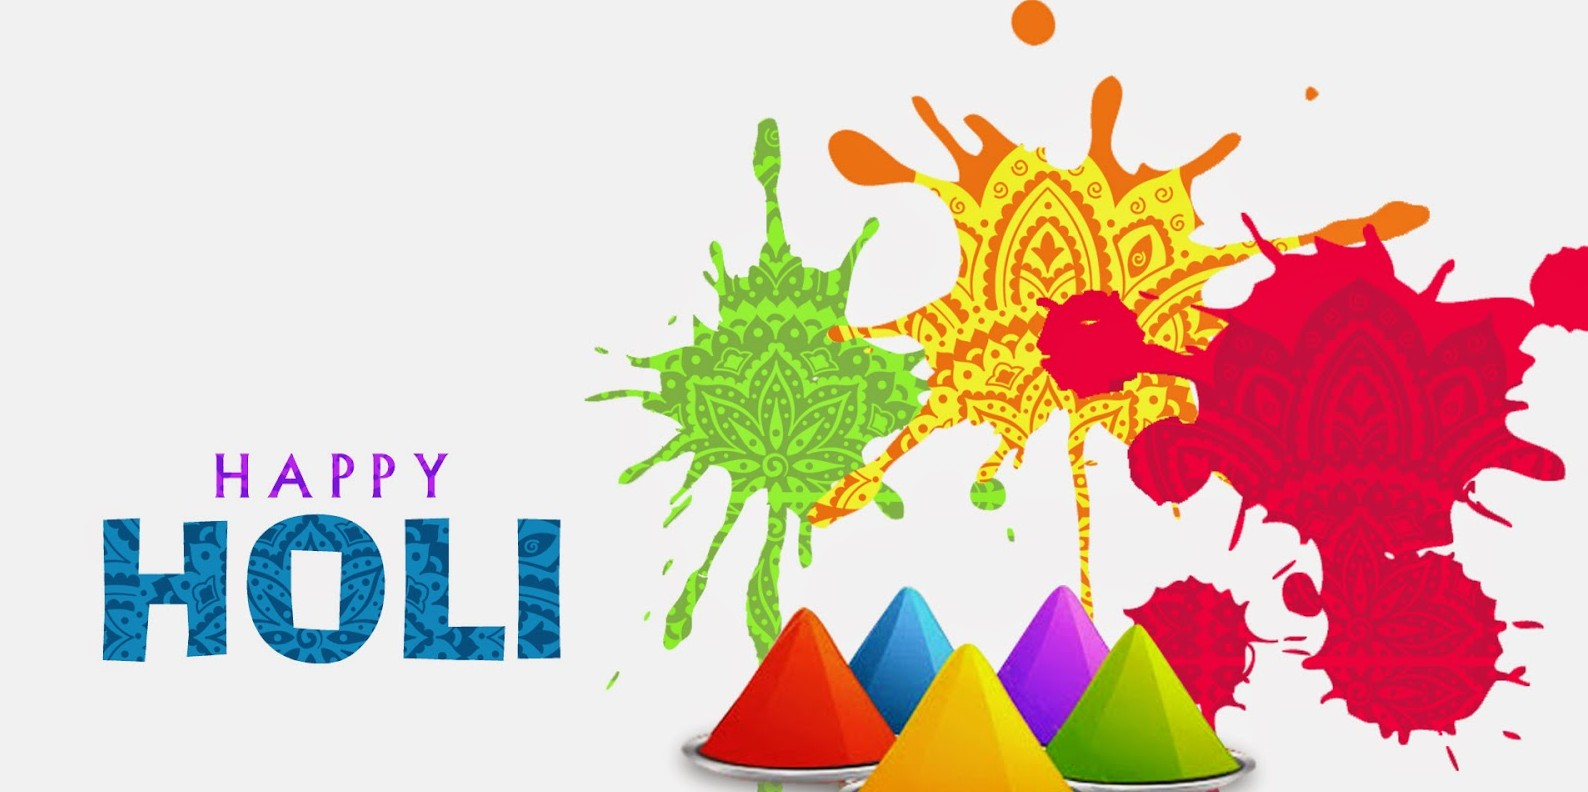 2017 Happy Holi Whatsapp Dp Images Pictures Hd Wallpapers Photos